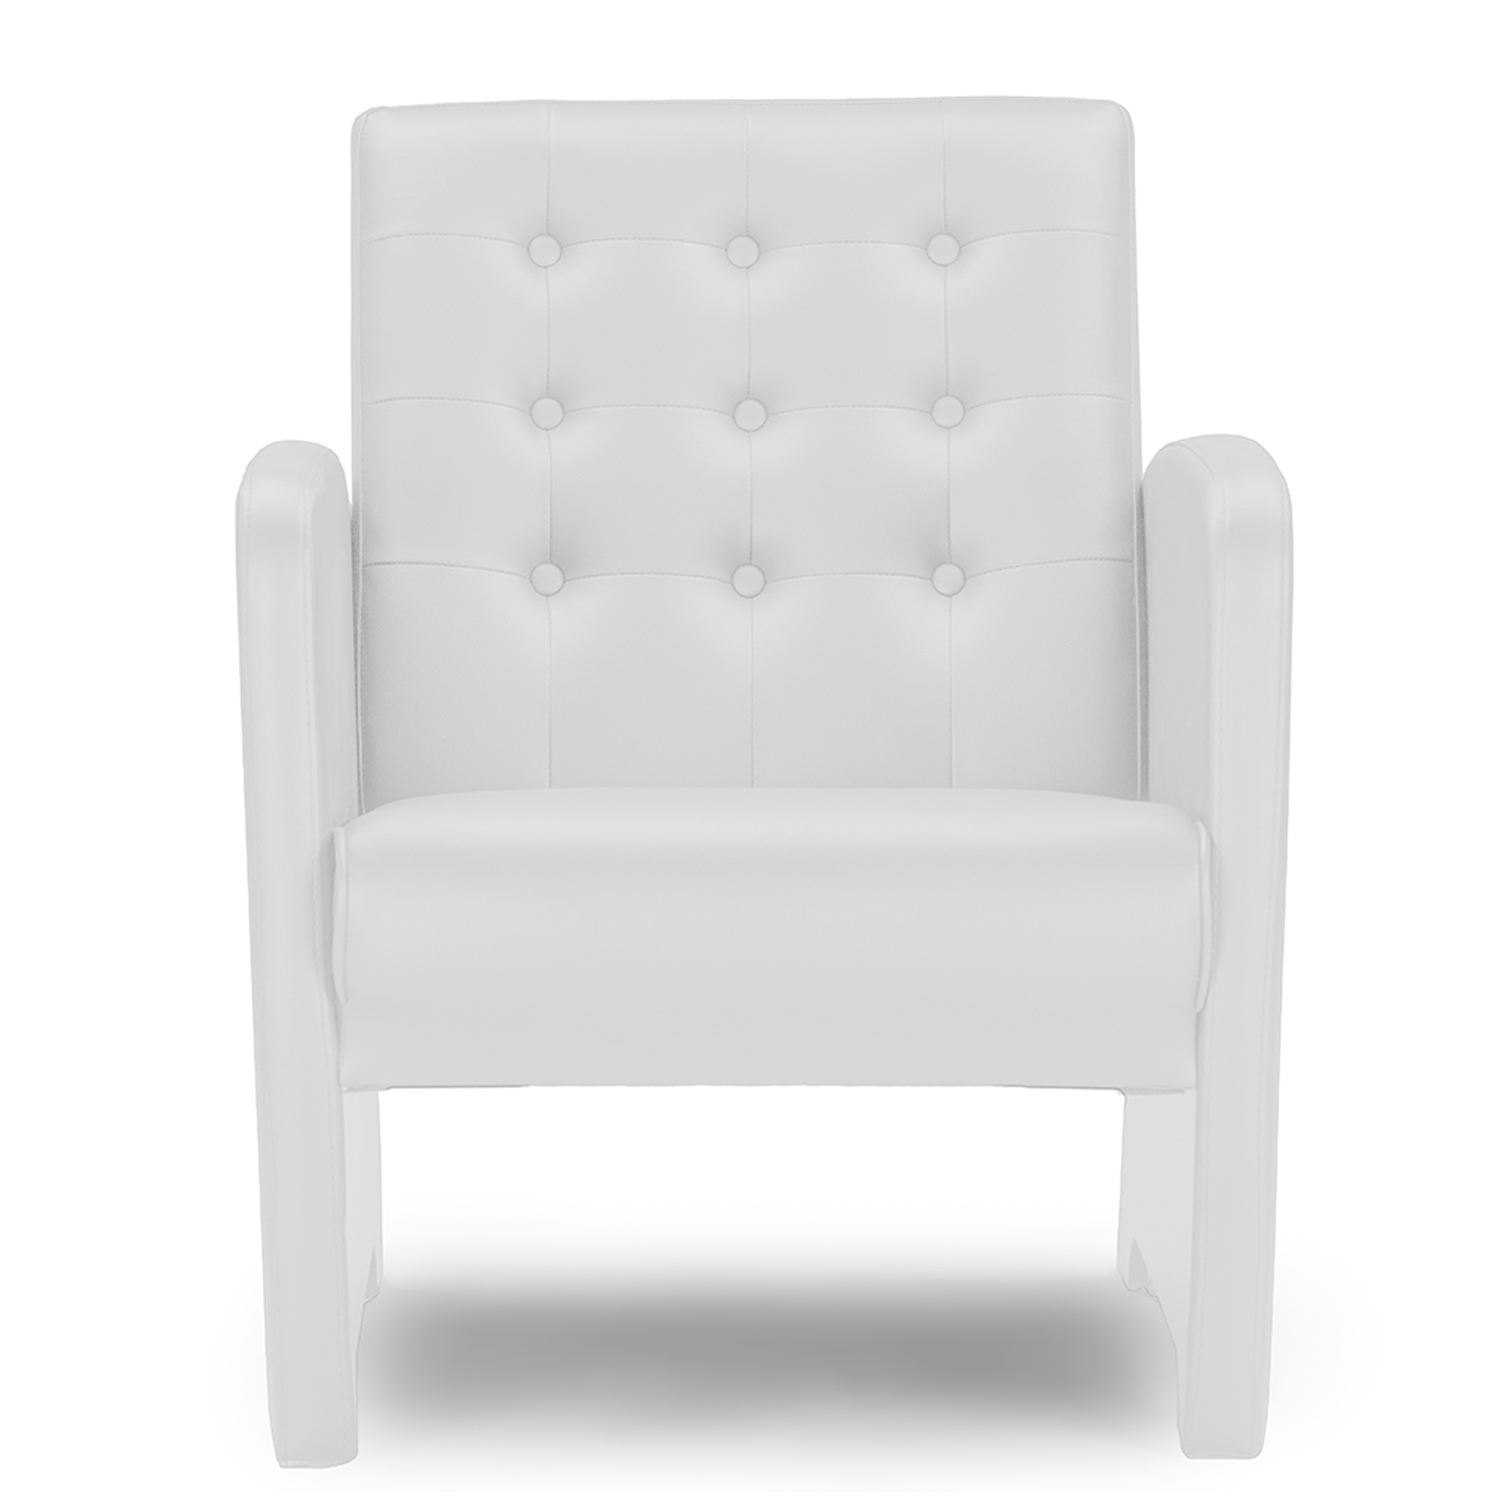 Baxton Studio Jazz White Faux Leather Upholstered Club Chair Baxton Studio  Restaurant Furniture, Hotel Furniture